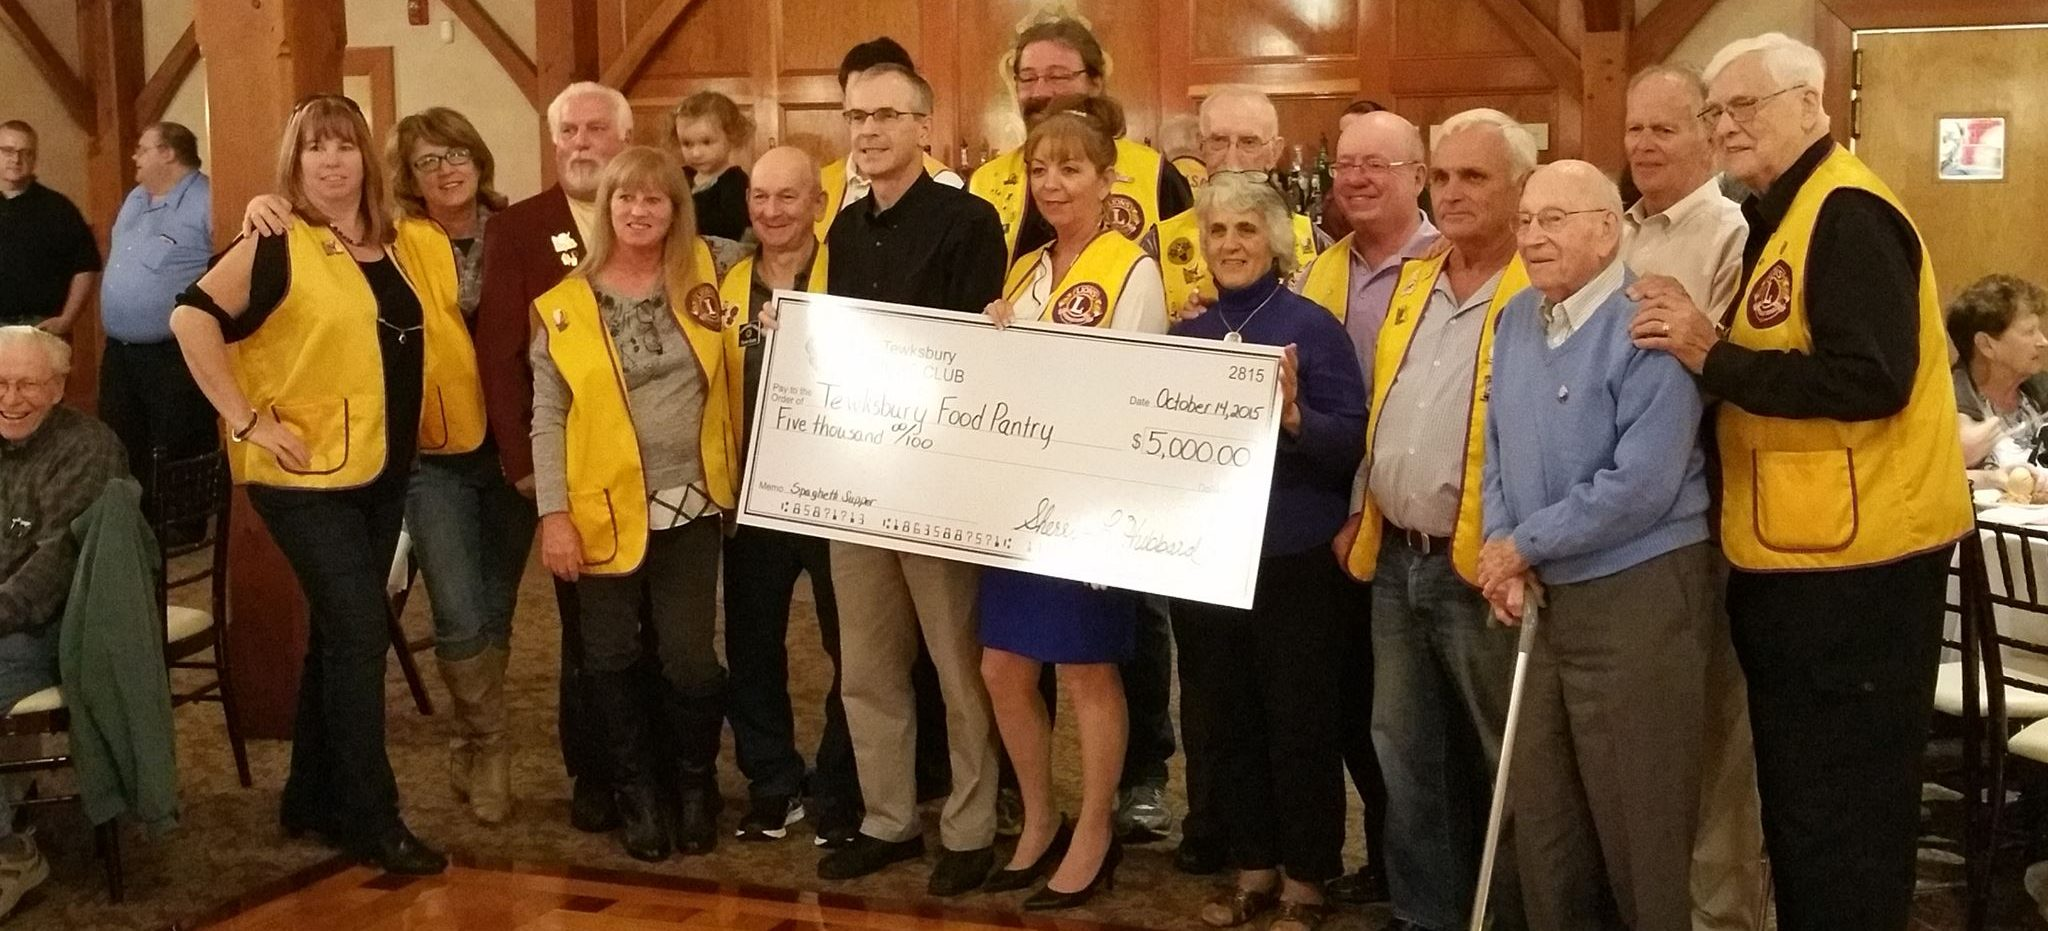 Lions Club Charity Fundraiser